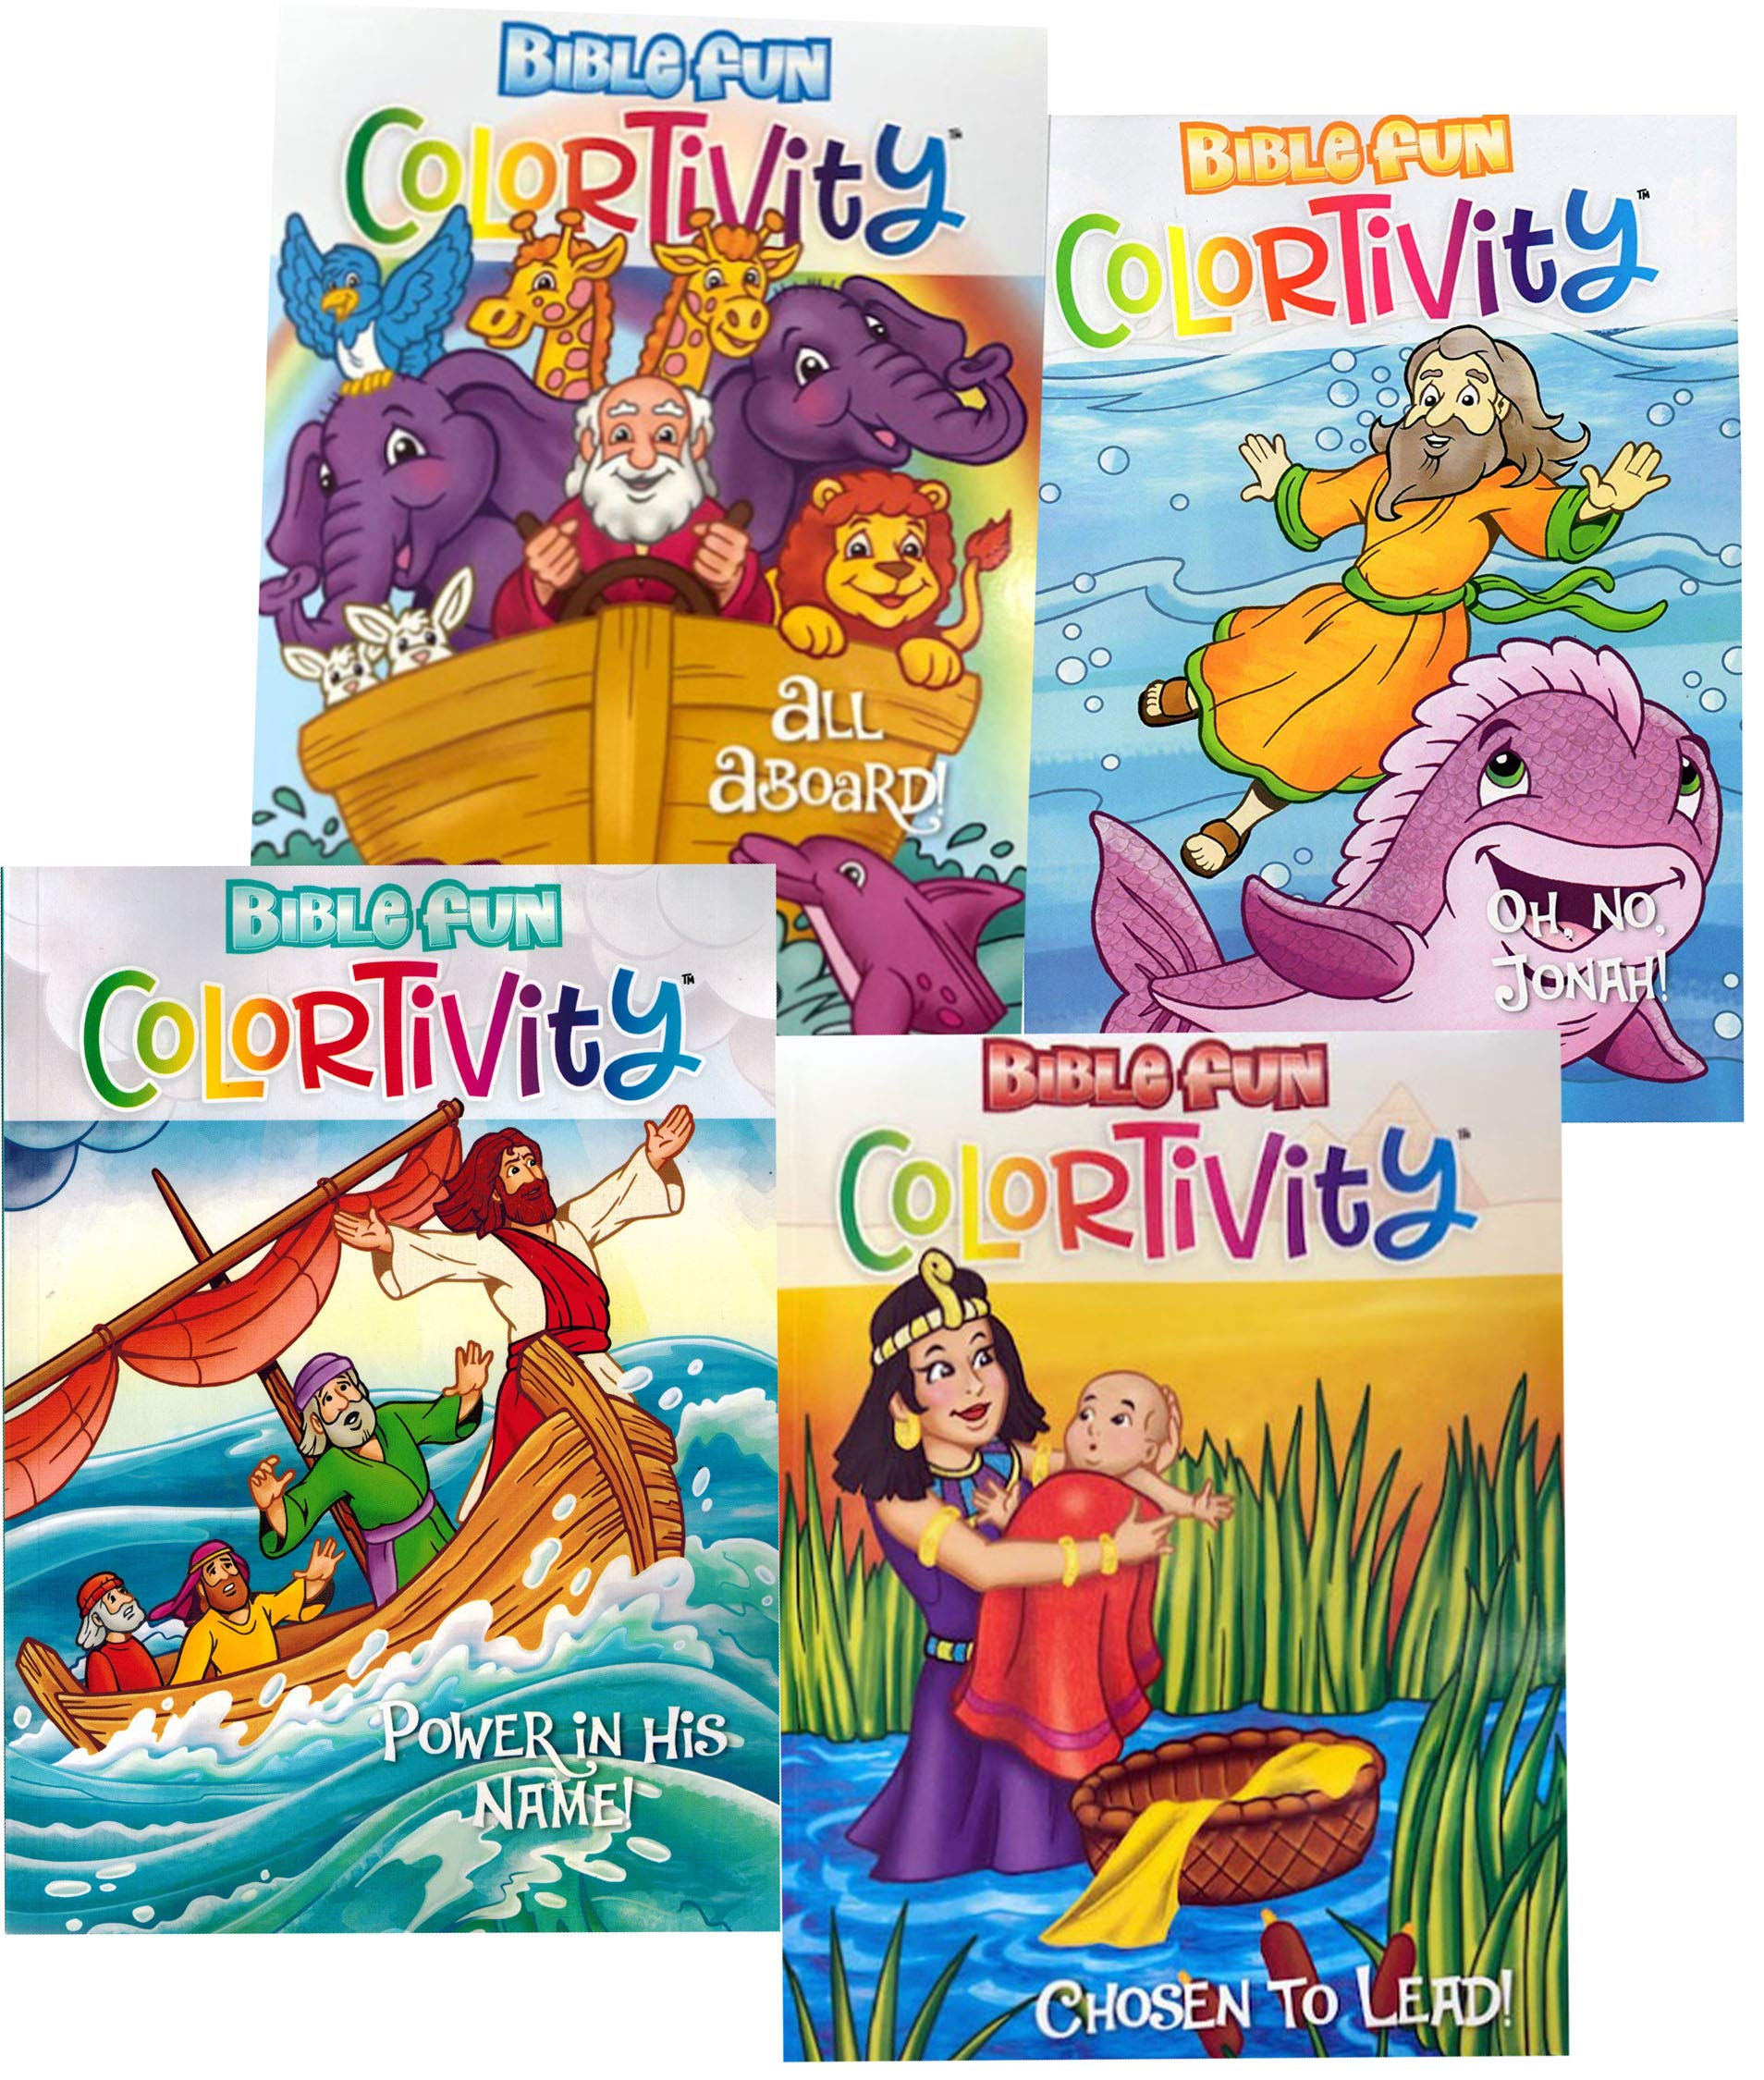 Colortivity Four Bible Fun Coloring Activity Books This Bundle Includes All Aboard,Power is His Name,Oh No Jonah ! and…